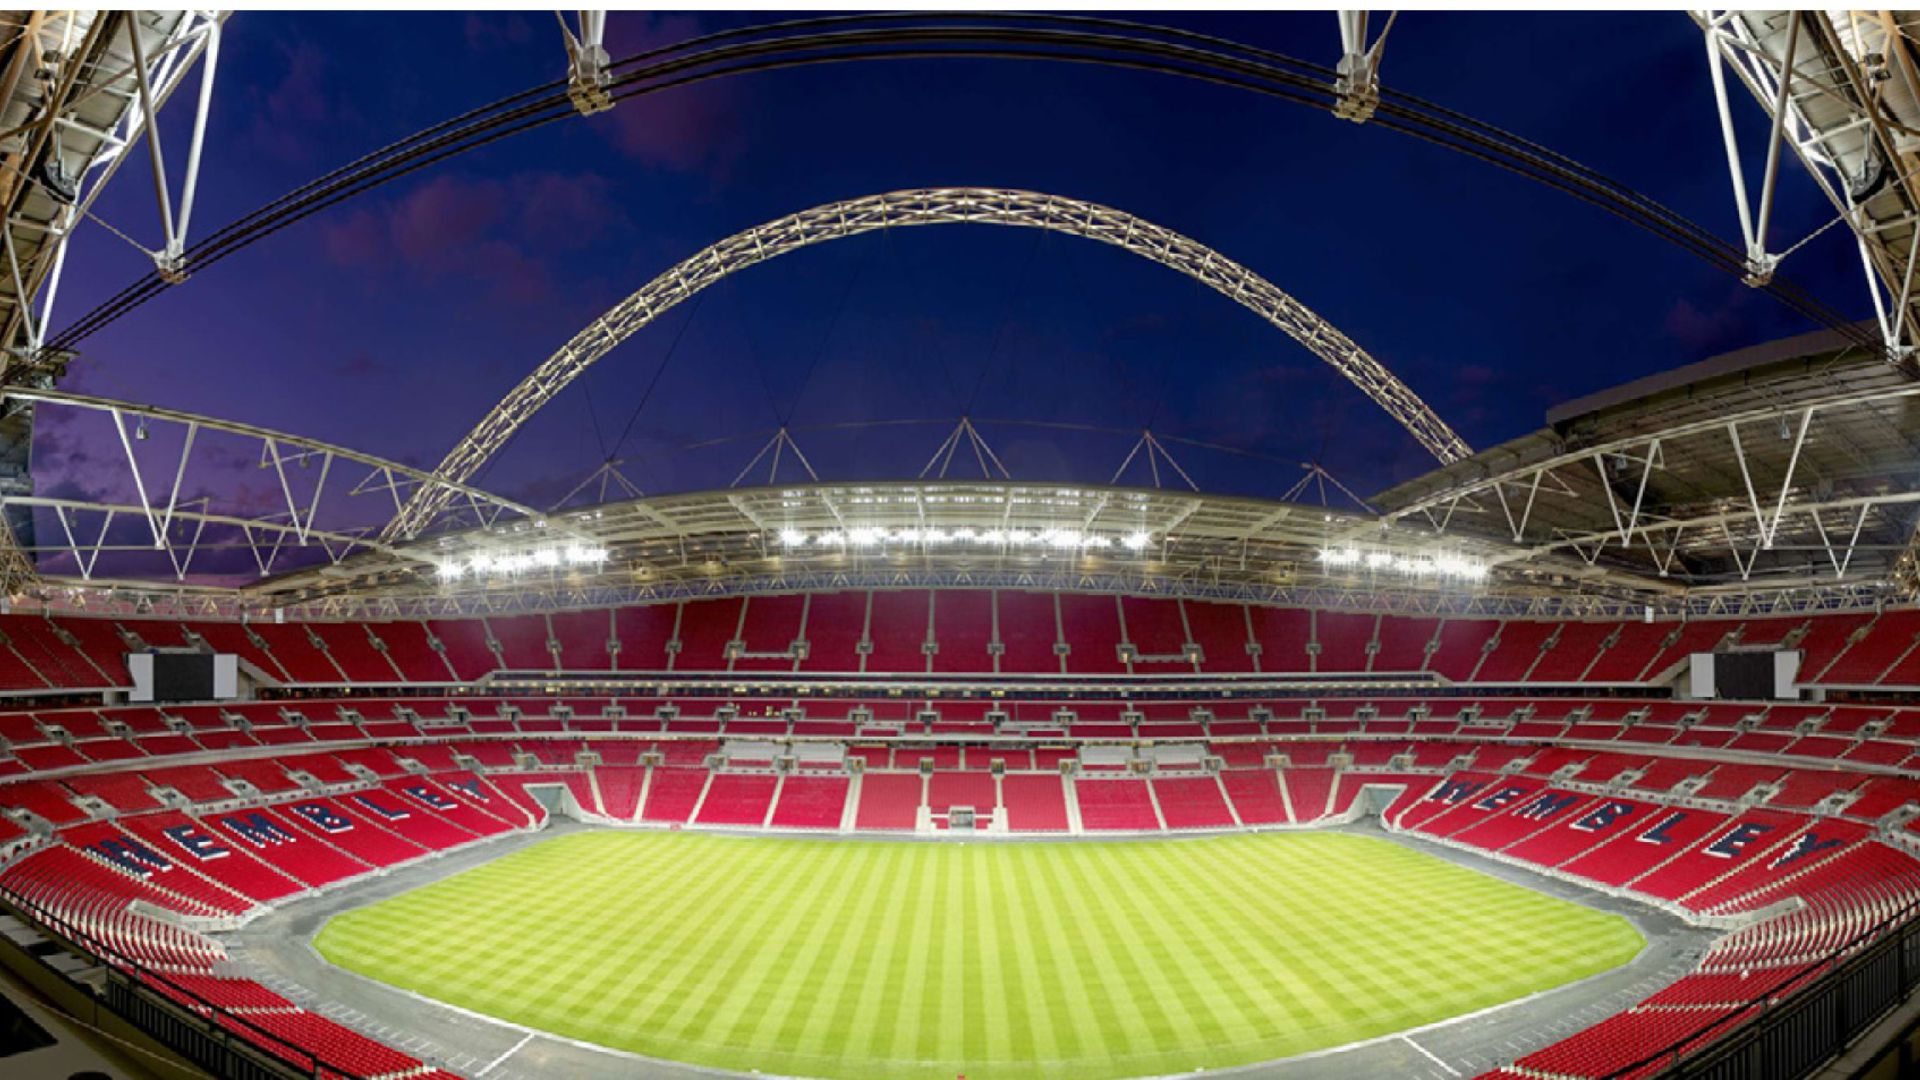 Catch A Soccer Match At Wembley Stadium In London, England